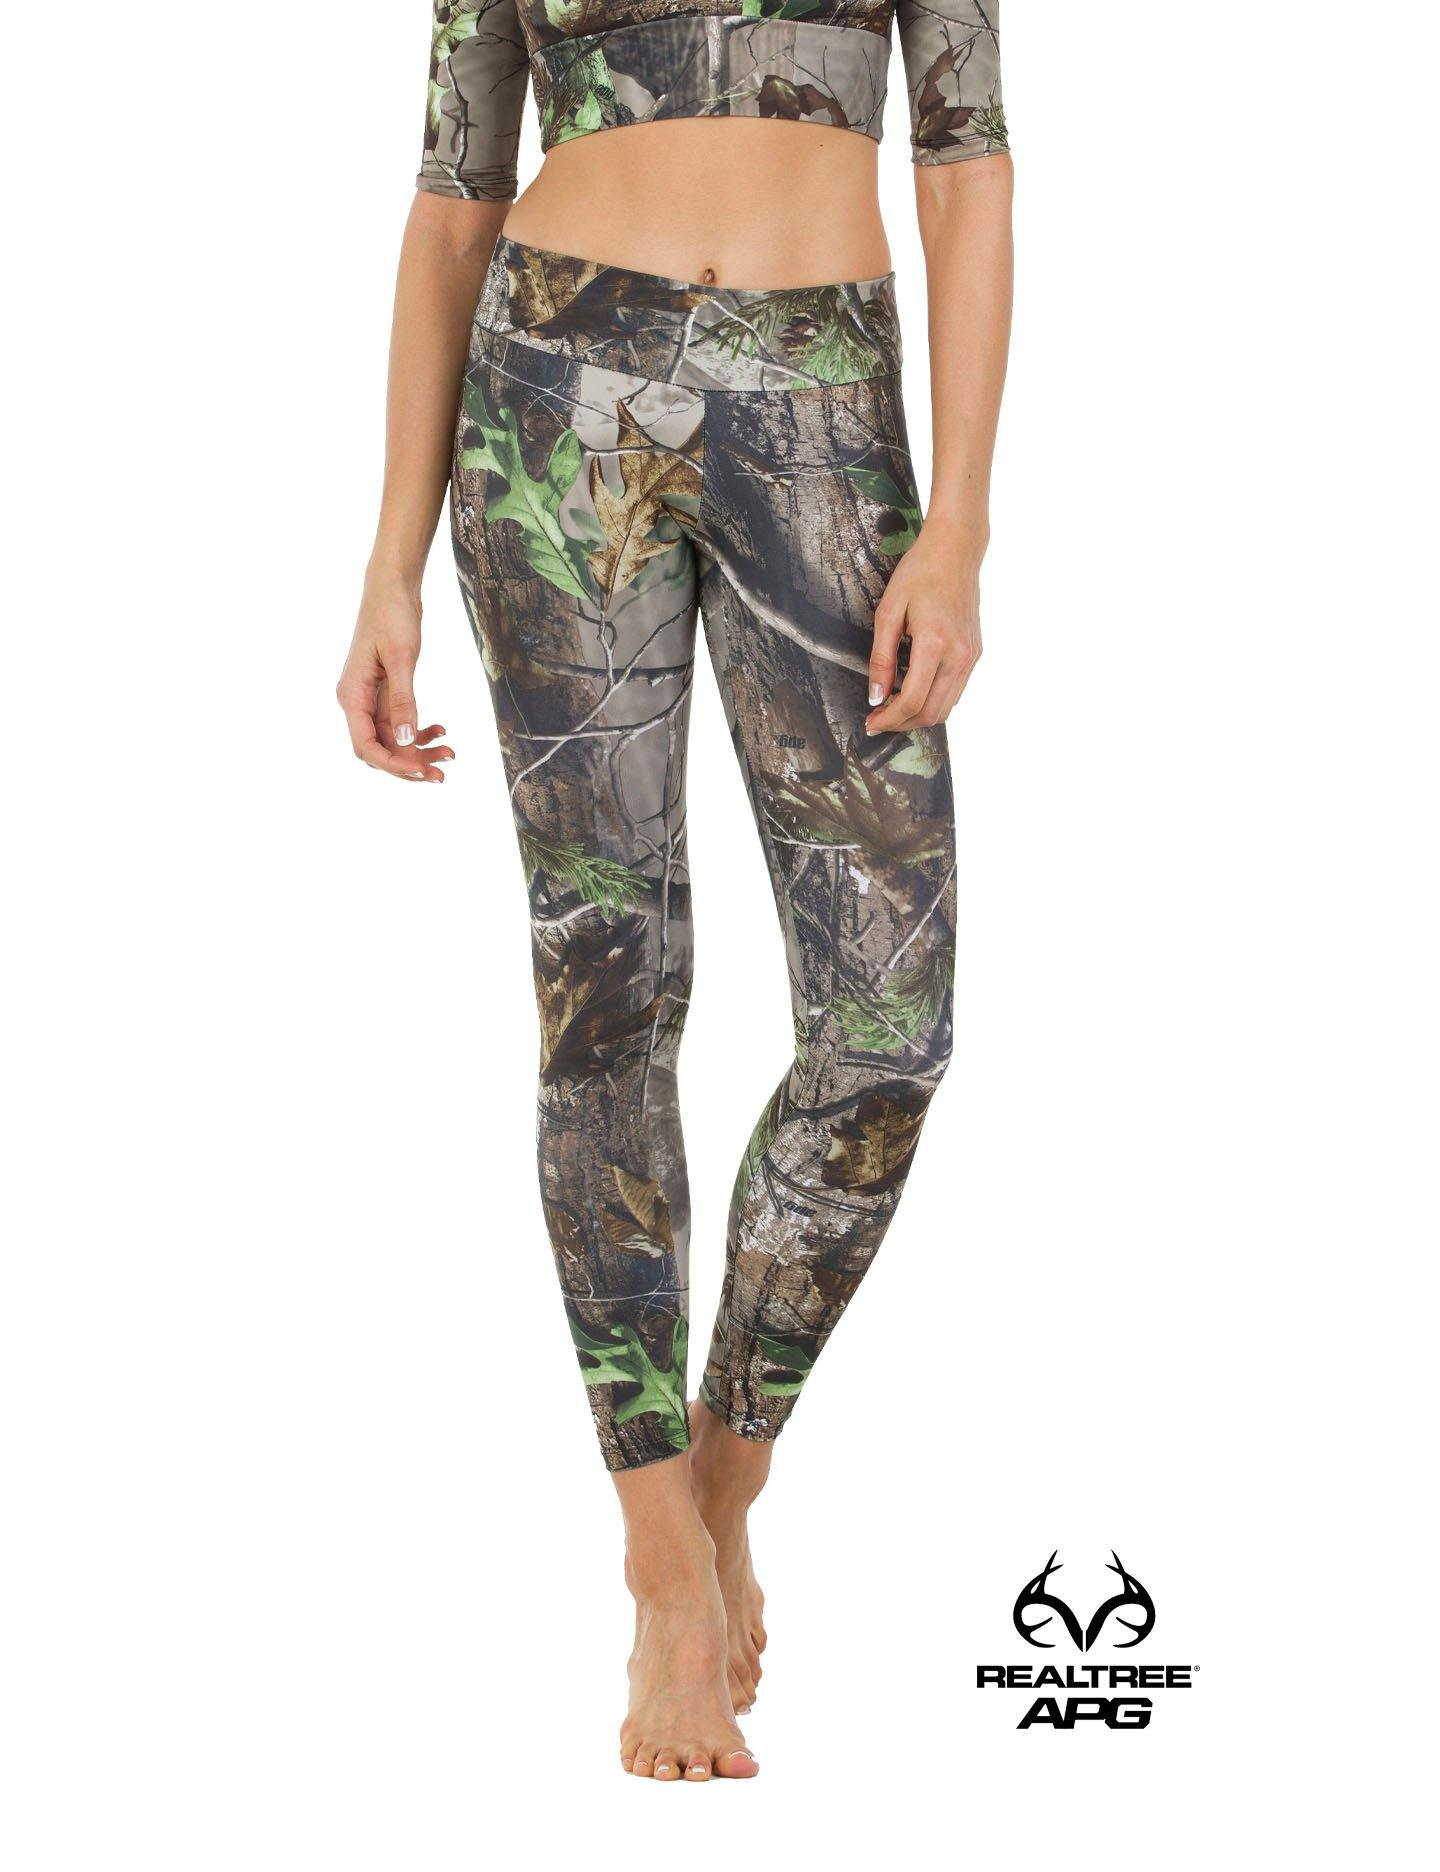 Apsara Leggings Low Waist Full Length, Realtree APG